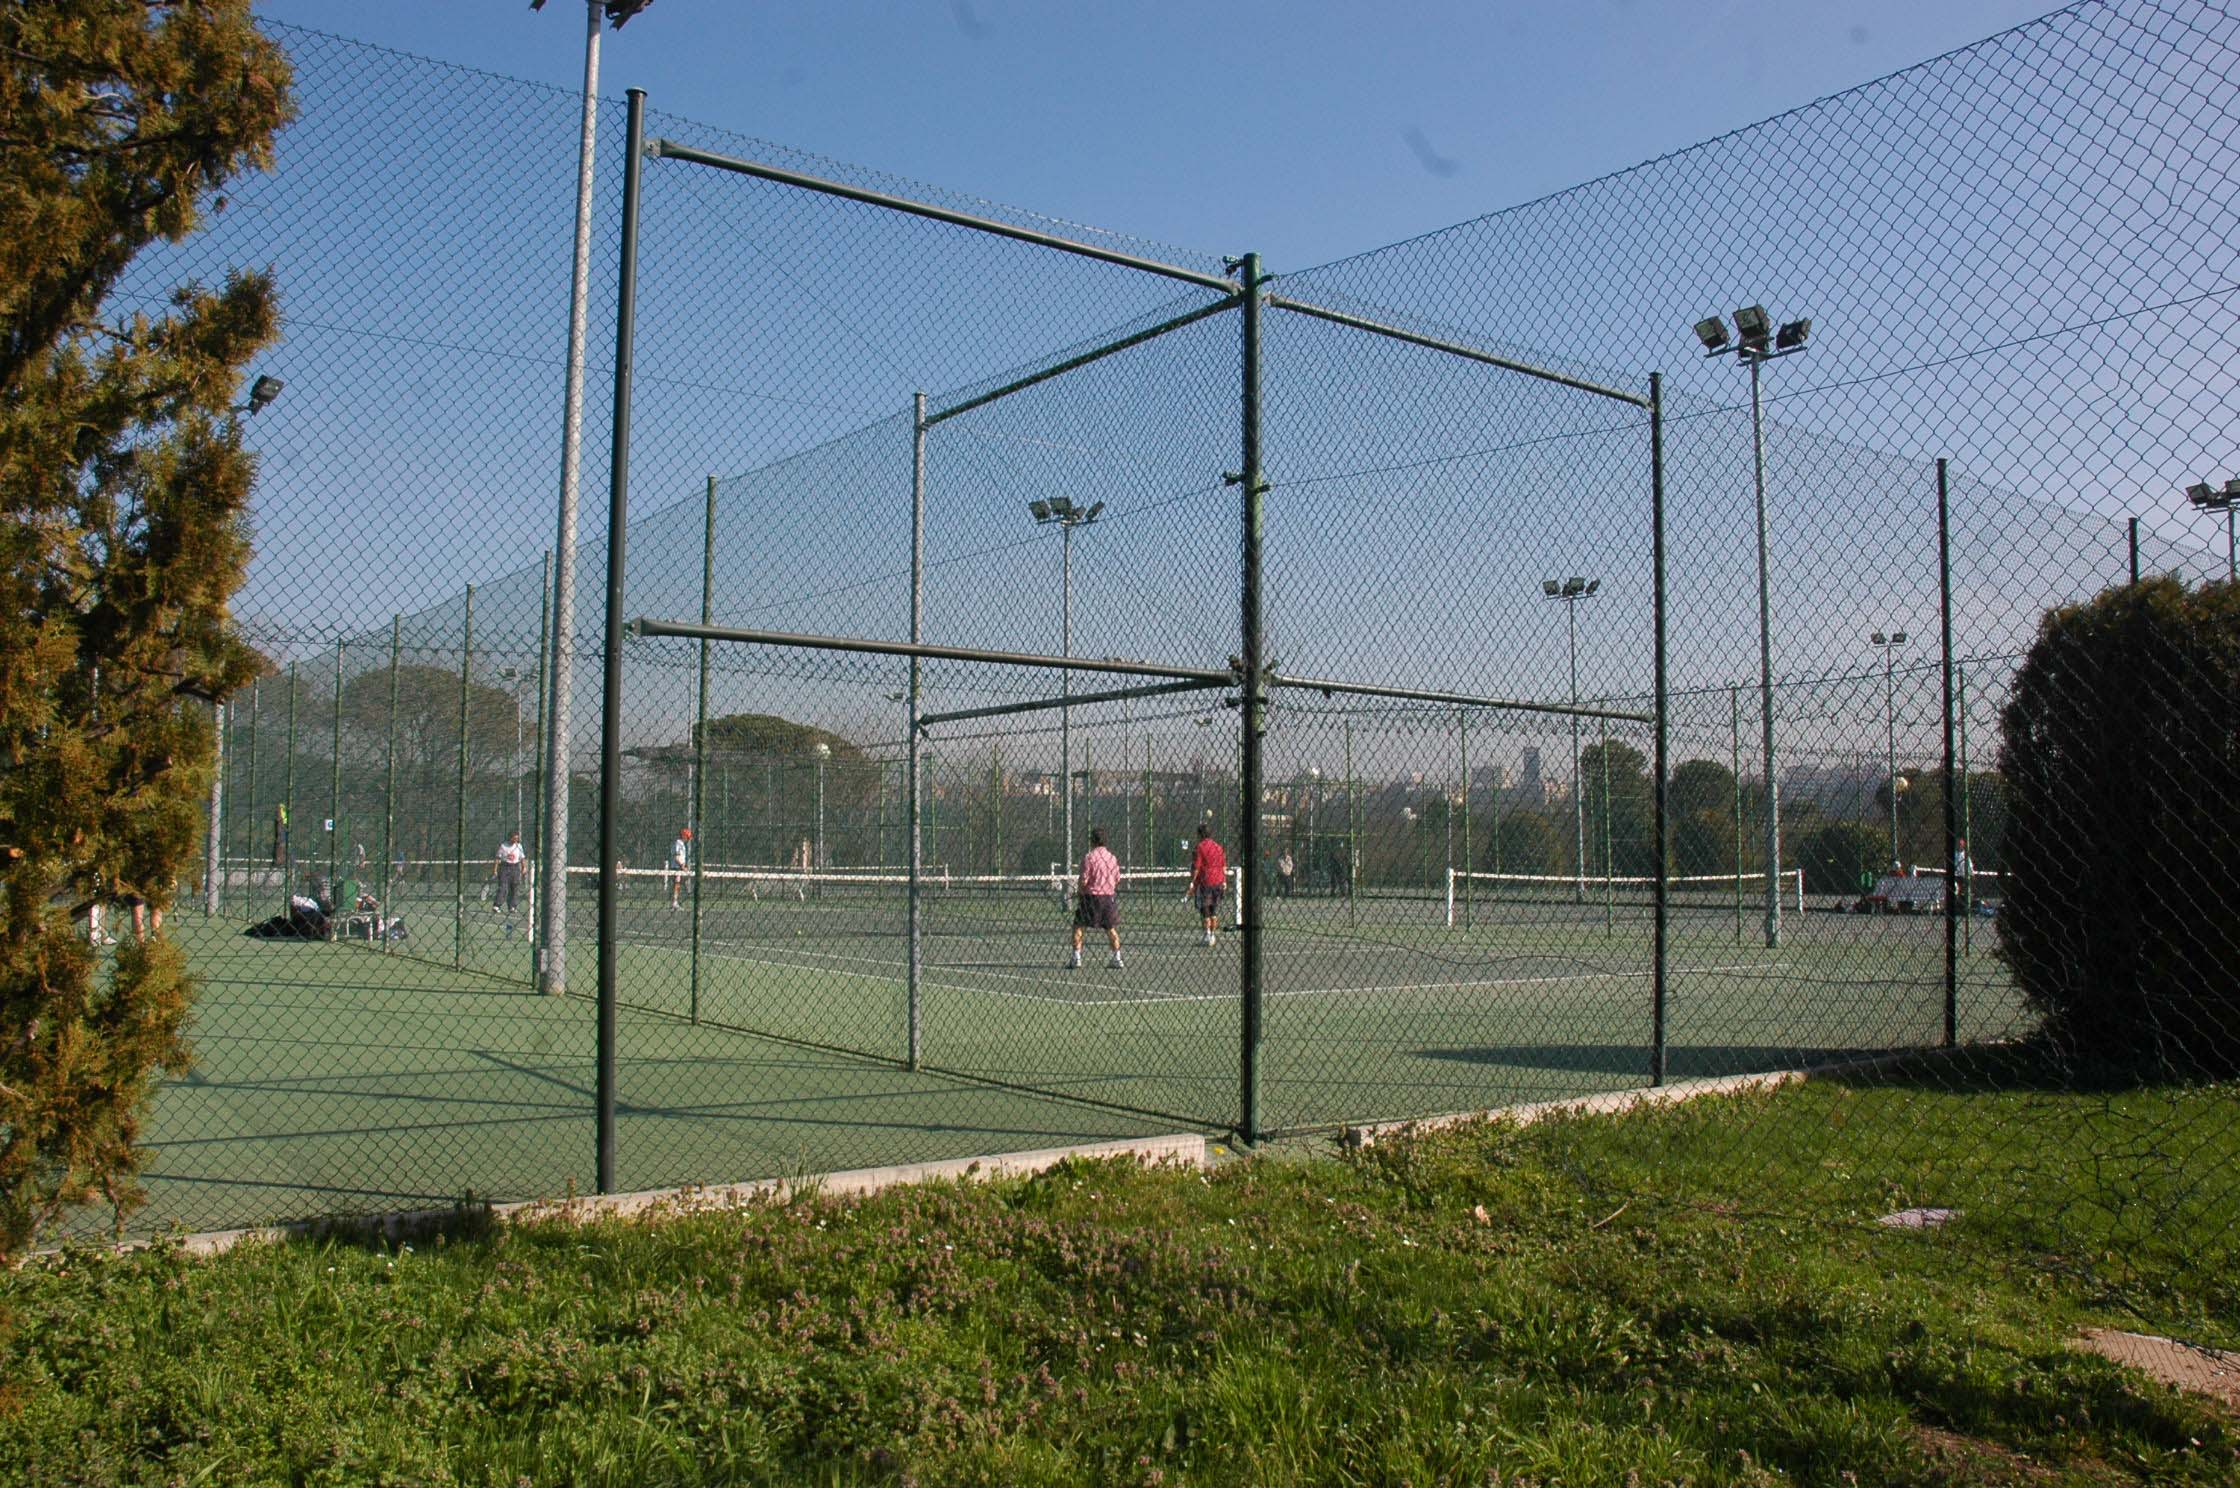 Club Tenis Casa de Campo Madrid